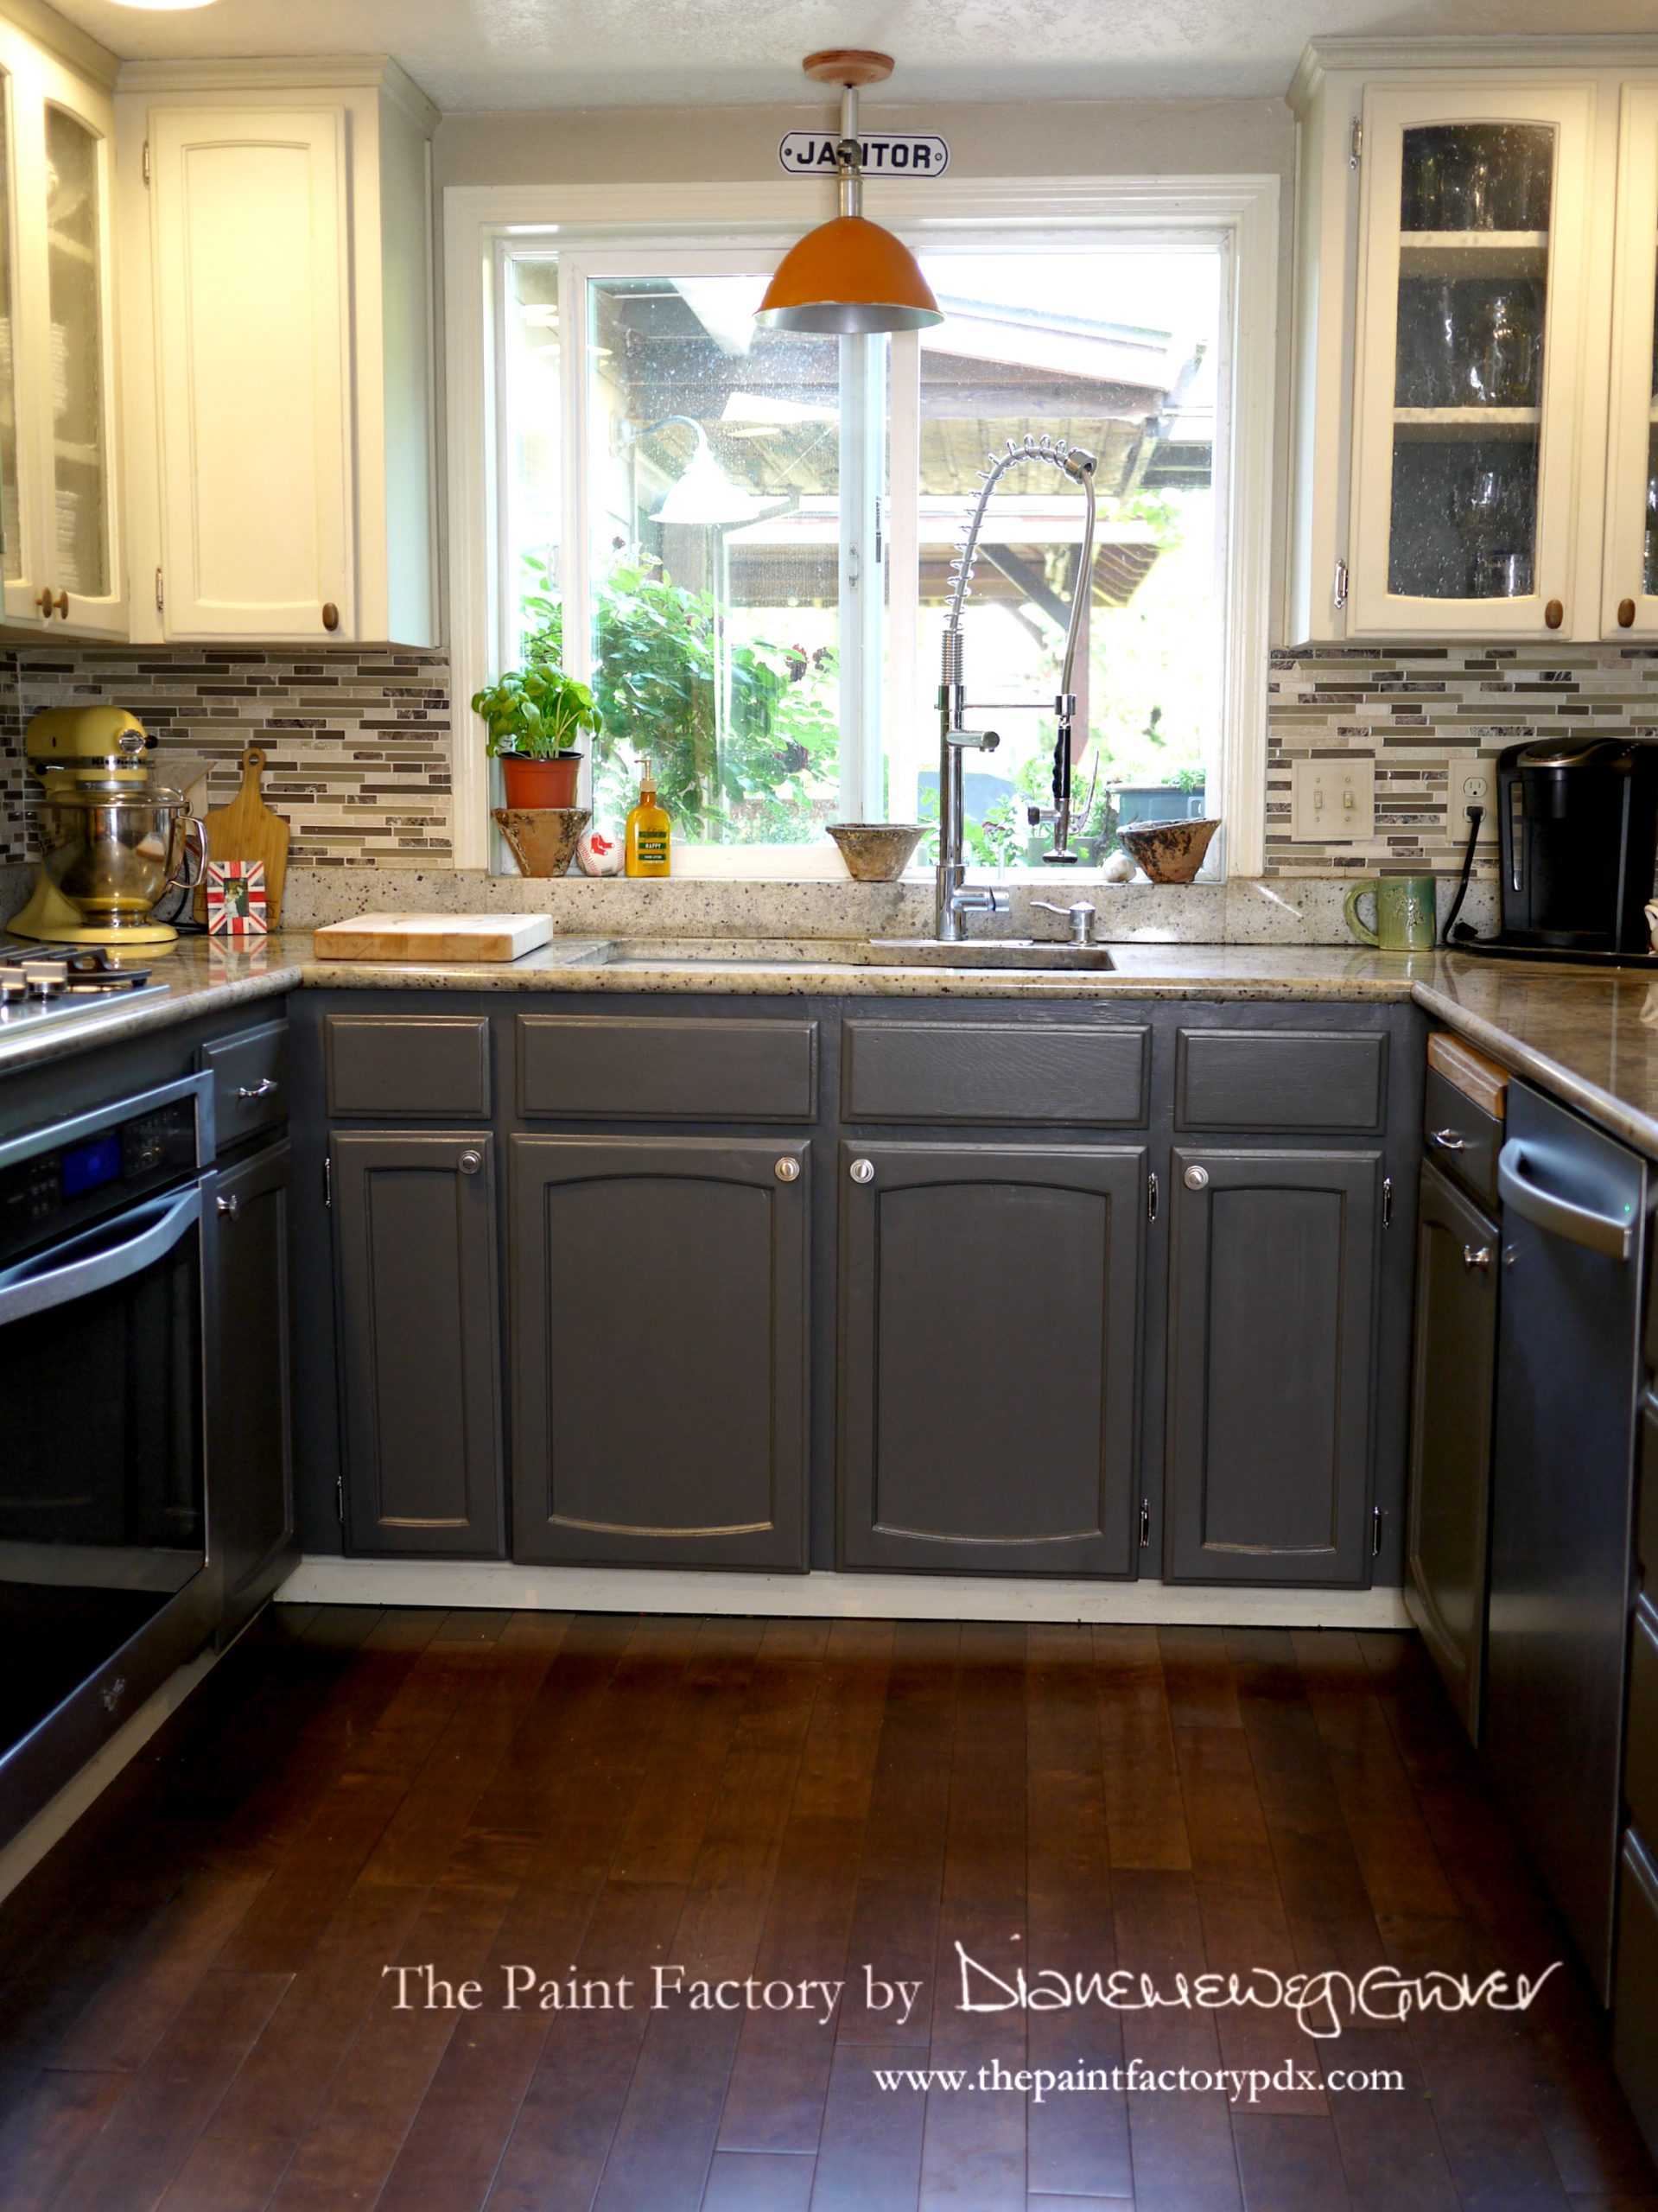 Facts About Painting Your Kitchen Cabinets? What I Would Do Differently ... Uncovered